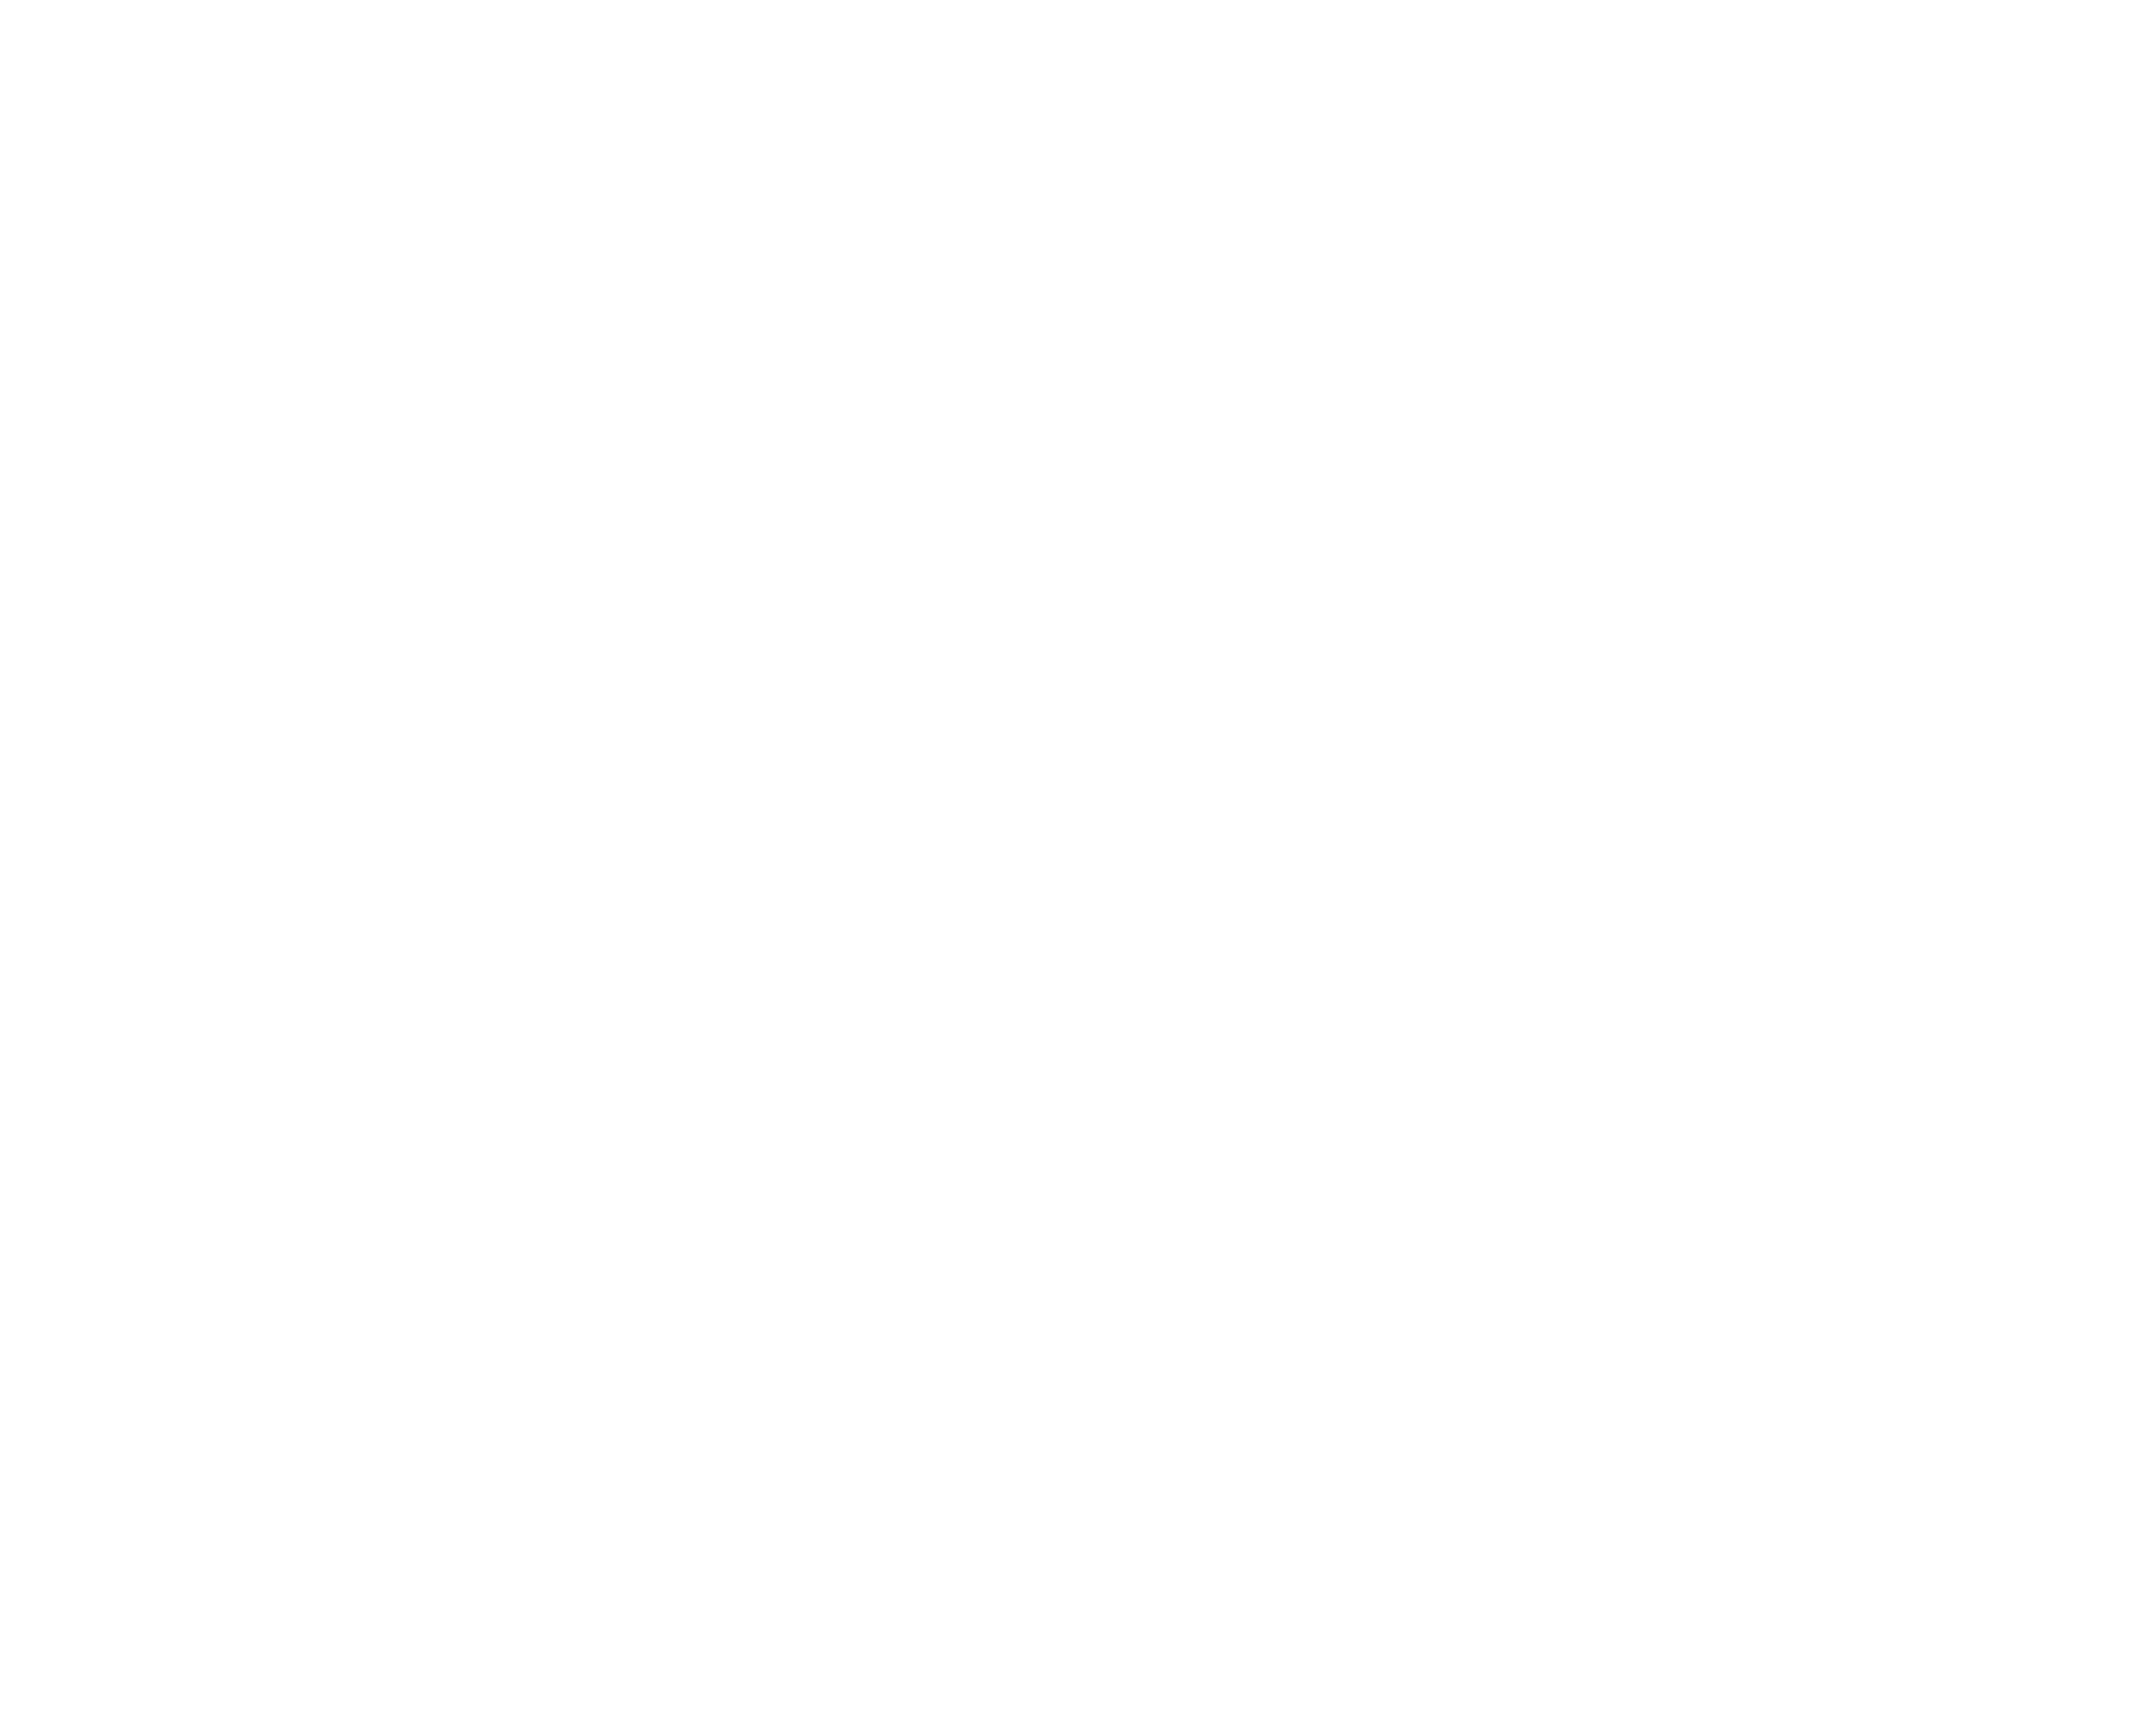 Texas Made Cattle & Horse Company